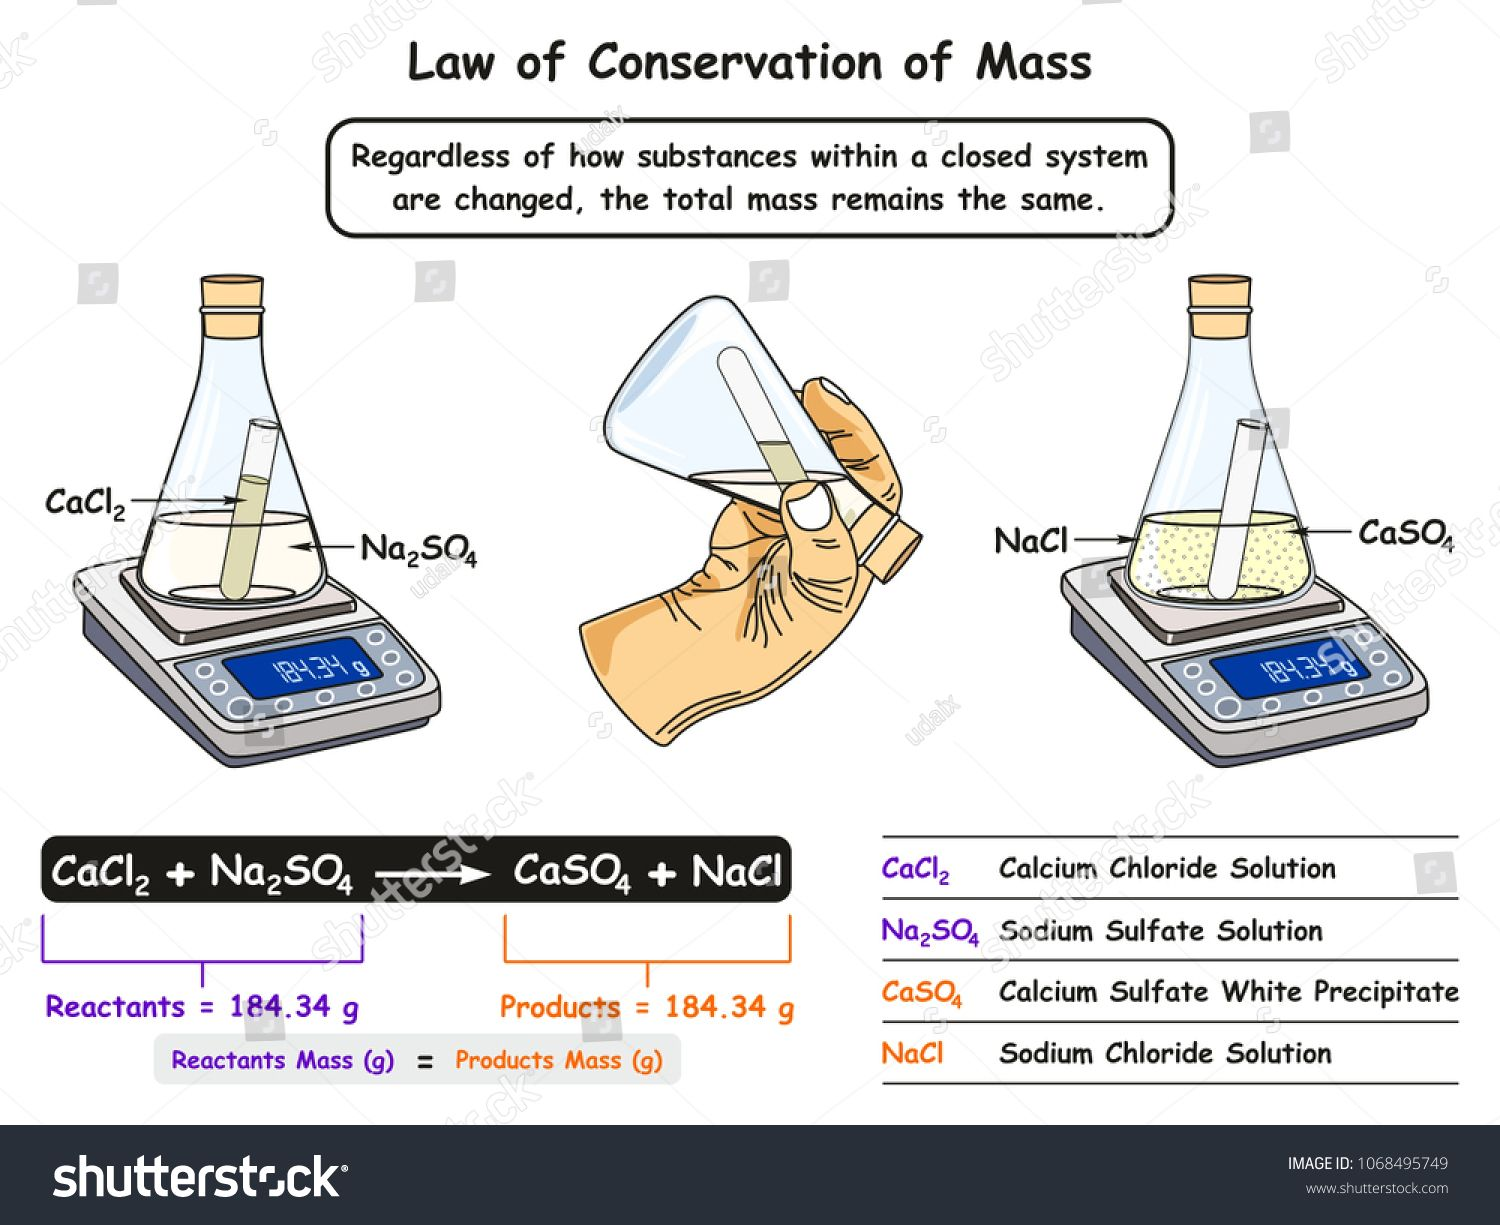 Law Of Conservation Of Mass Infographic Diagram Showing A